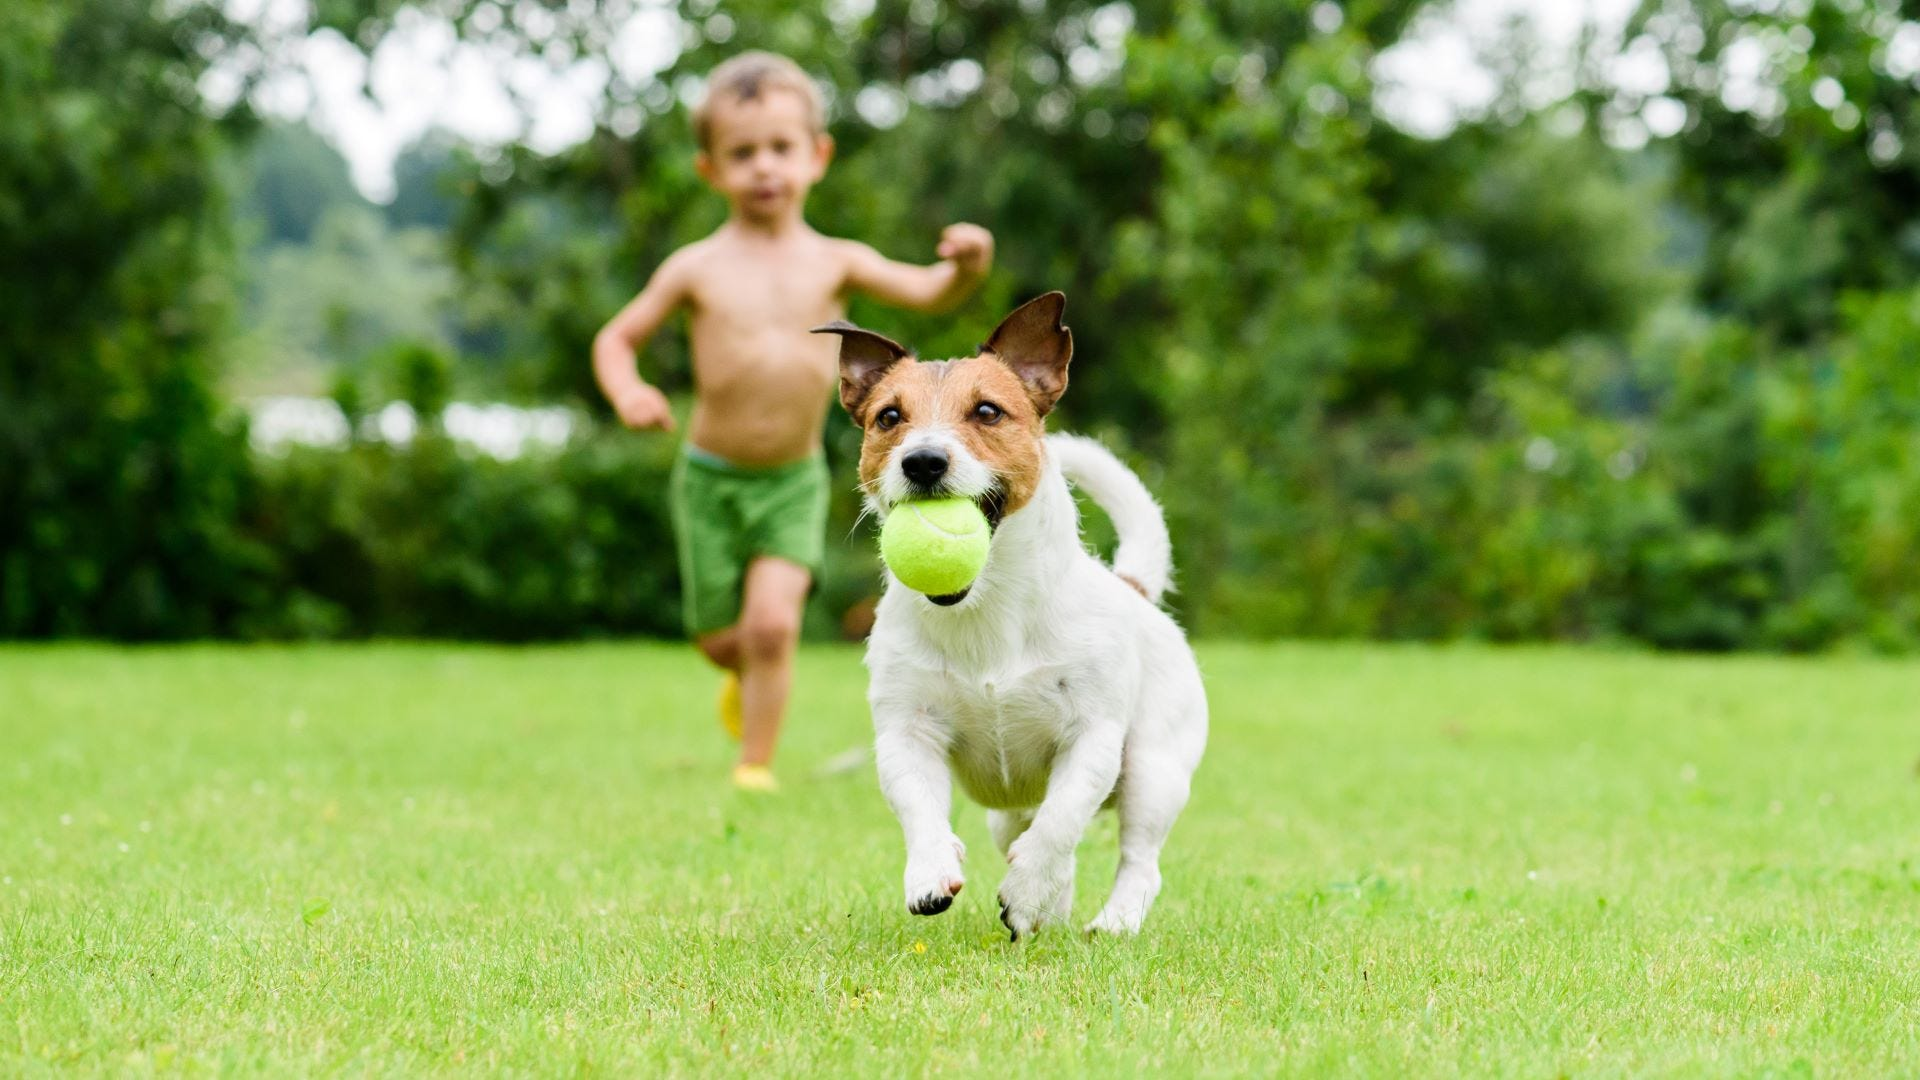 A dog with a ball in its mouth running away from a little boy.